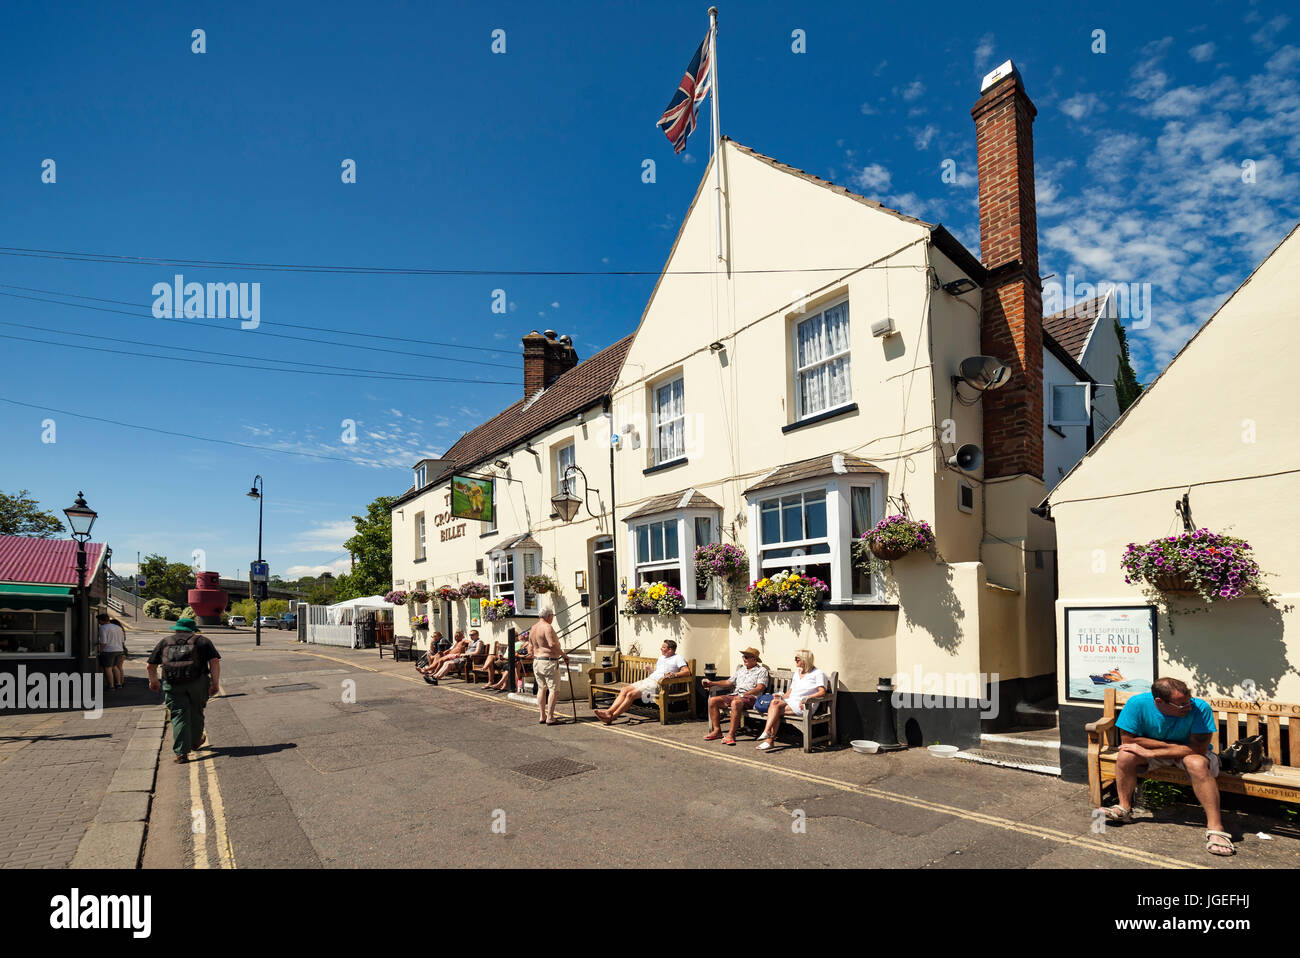 The Crooked Billet pub Leigh on Sea. - Stock Image